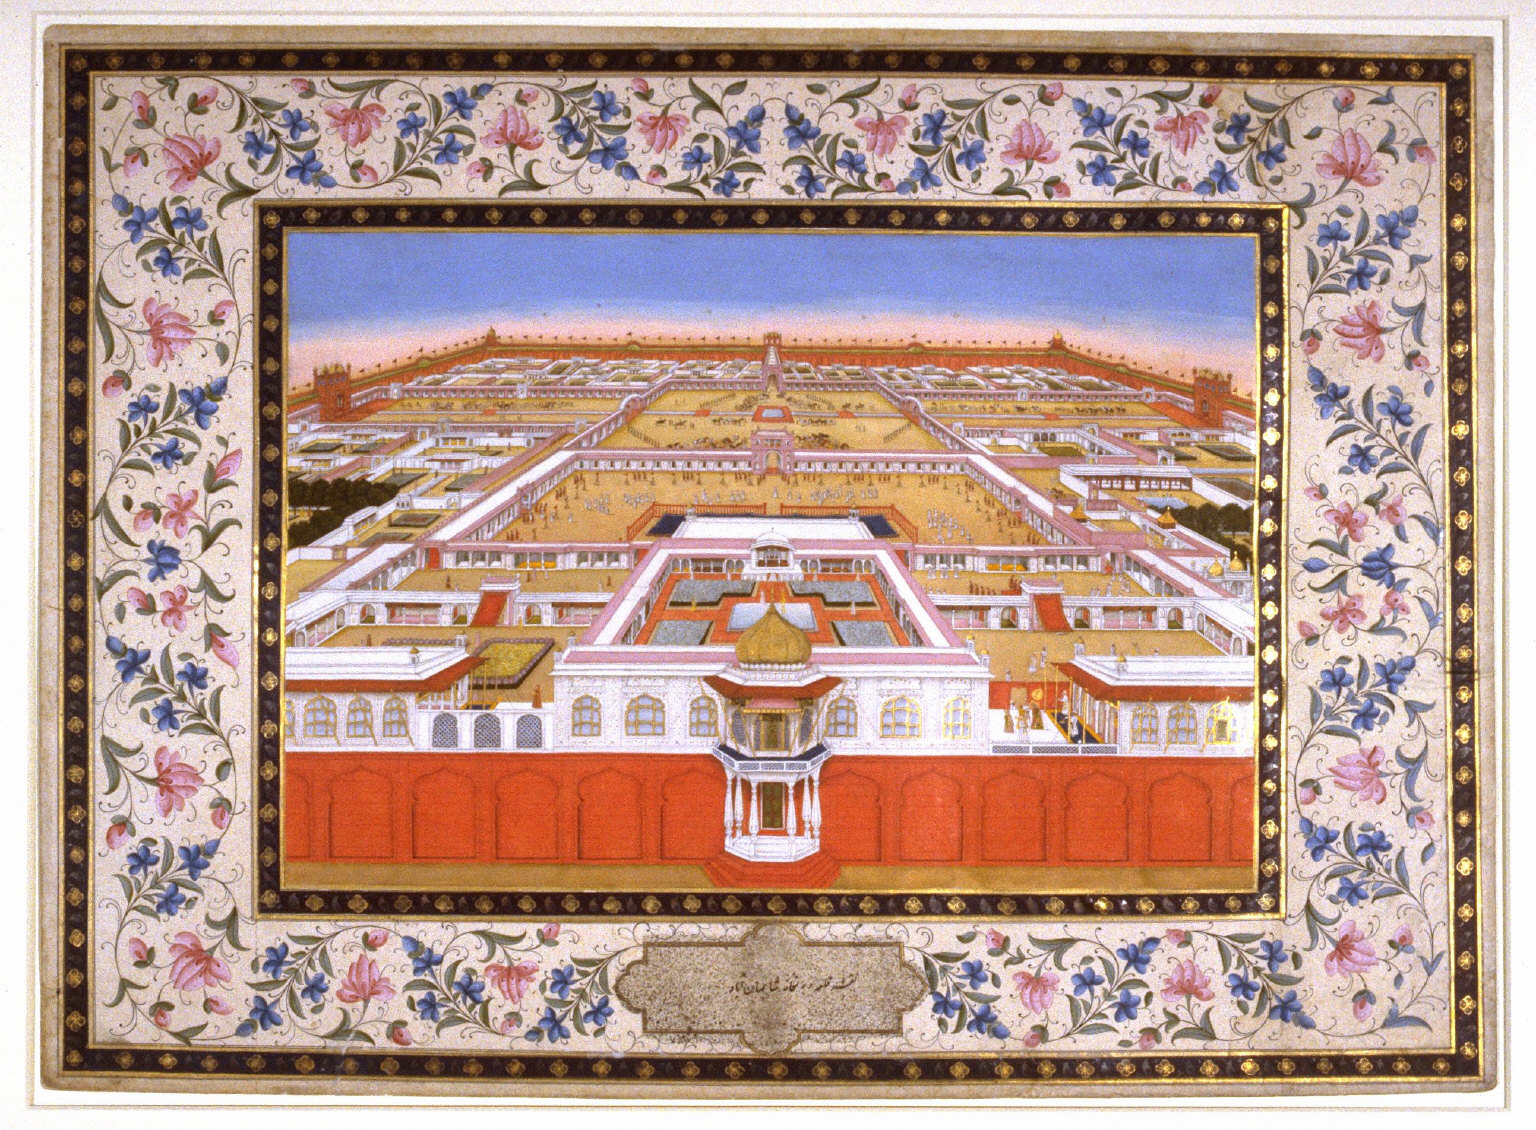 The Fort and Royal Palace of Shah Jehan, a page from the Lady Coote Album